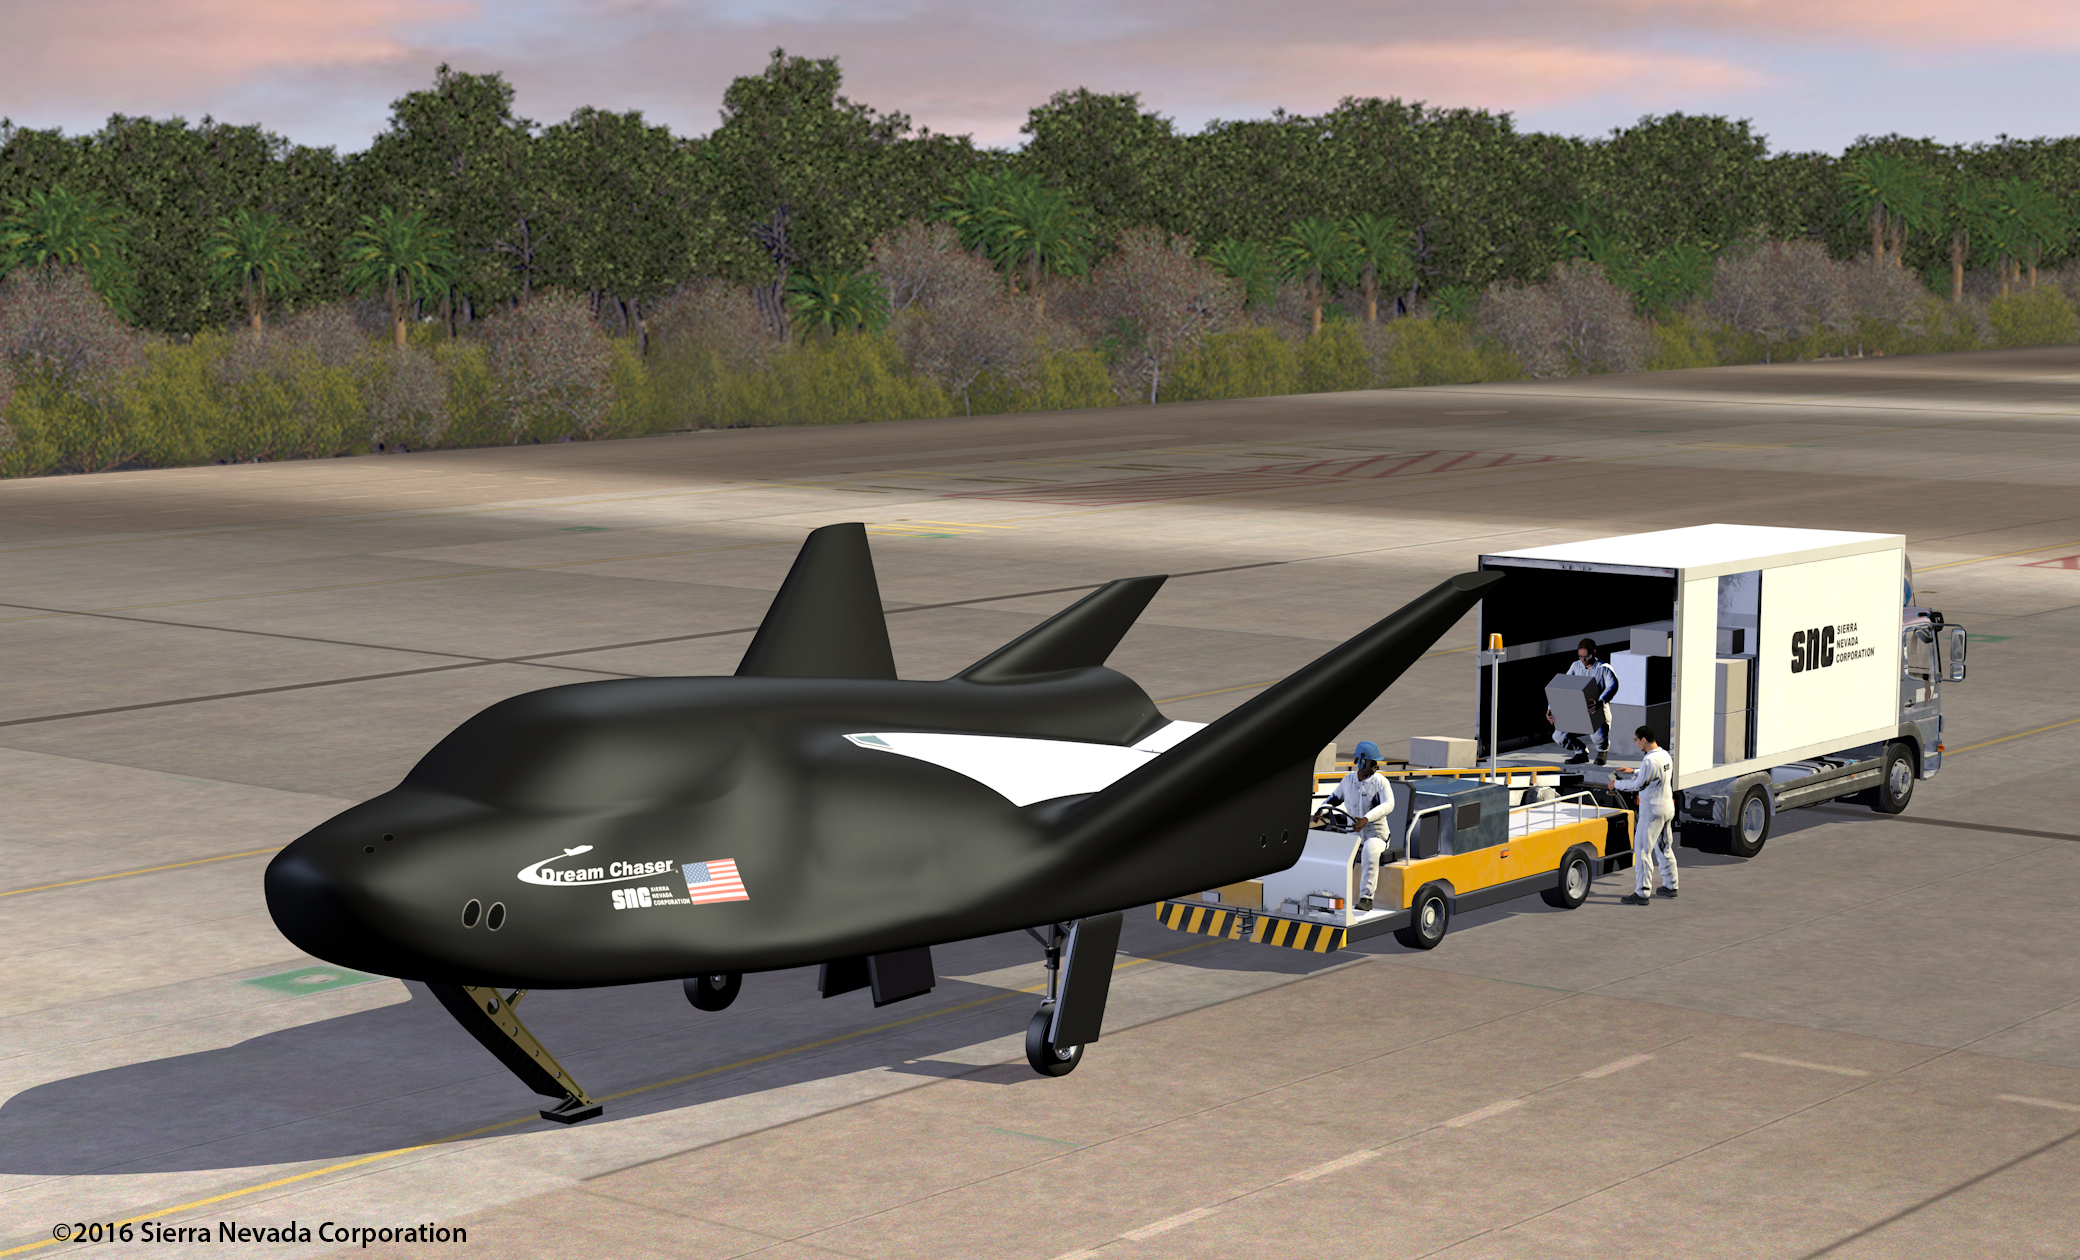 SNC Dream Chaser Spacecraft